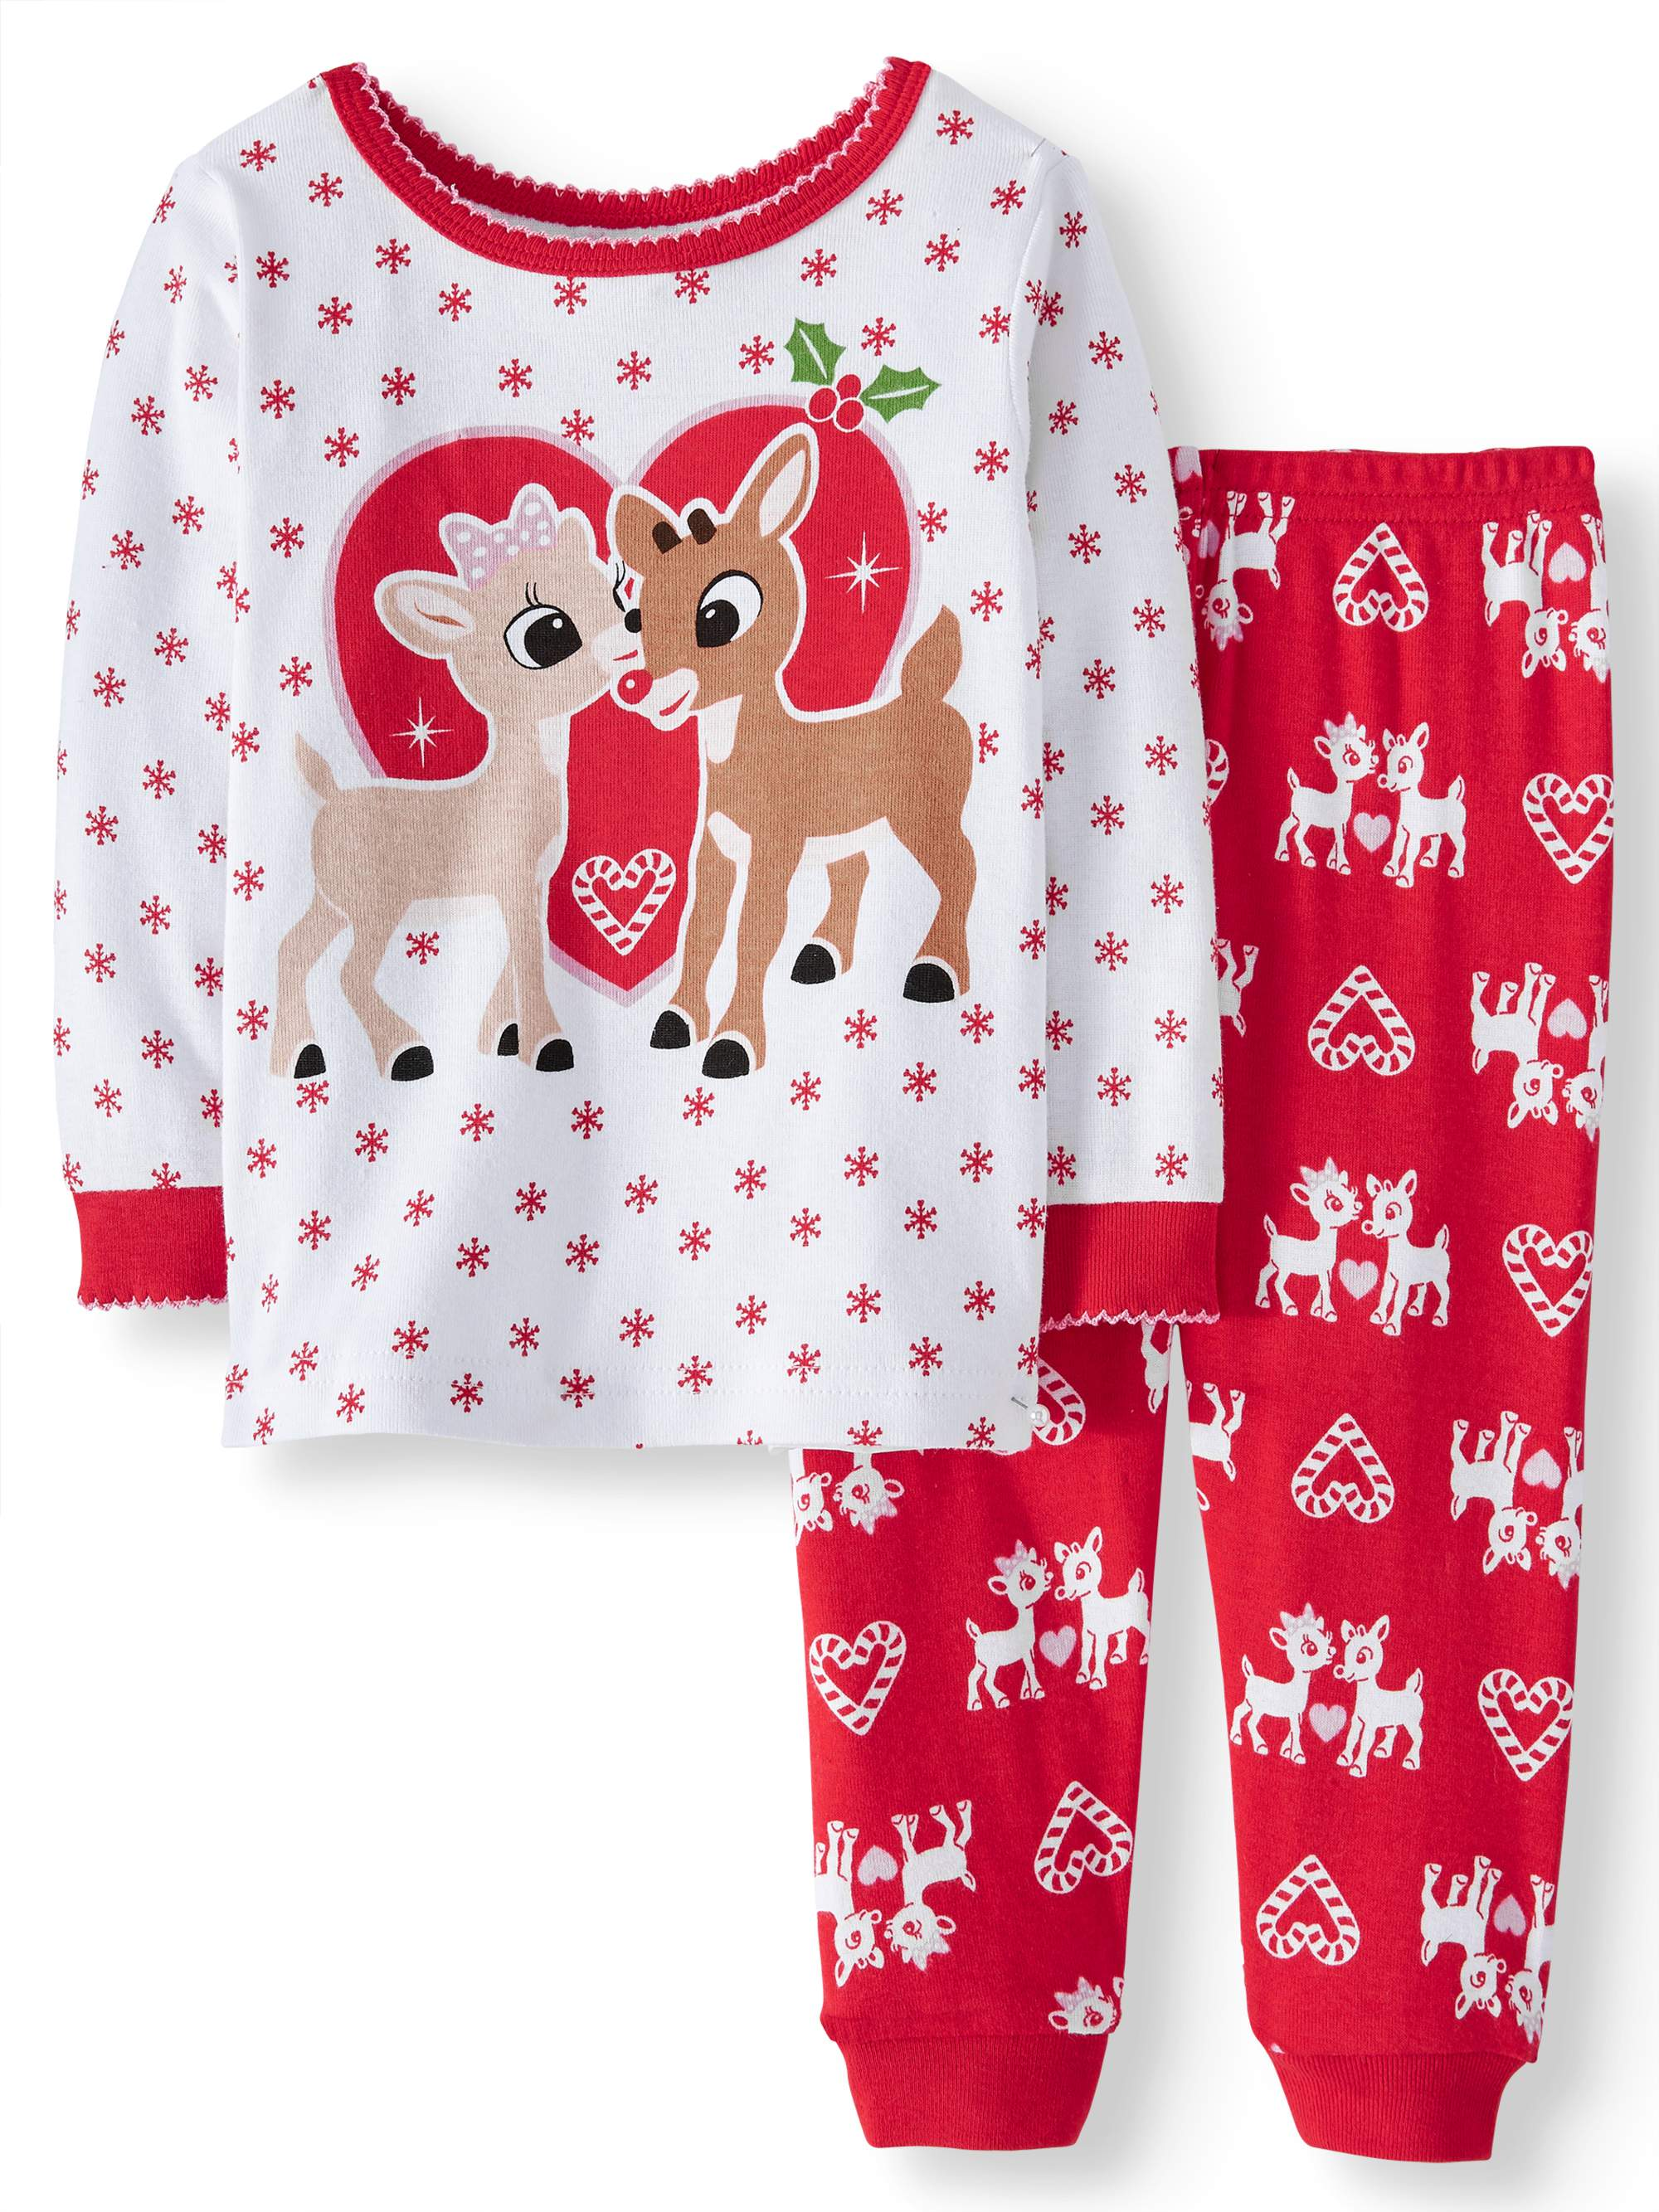 Rudolph the Red Nosed Reindeer - RUDOLPH THE RED NOSED REINDEER Christmas  Long Sleeve Tight Fit Pajamas 60db6dfb9